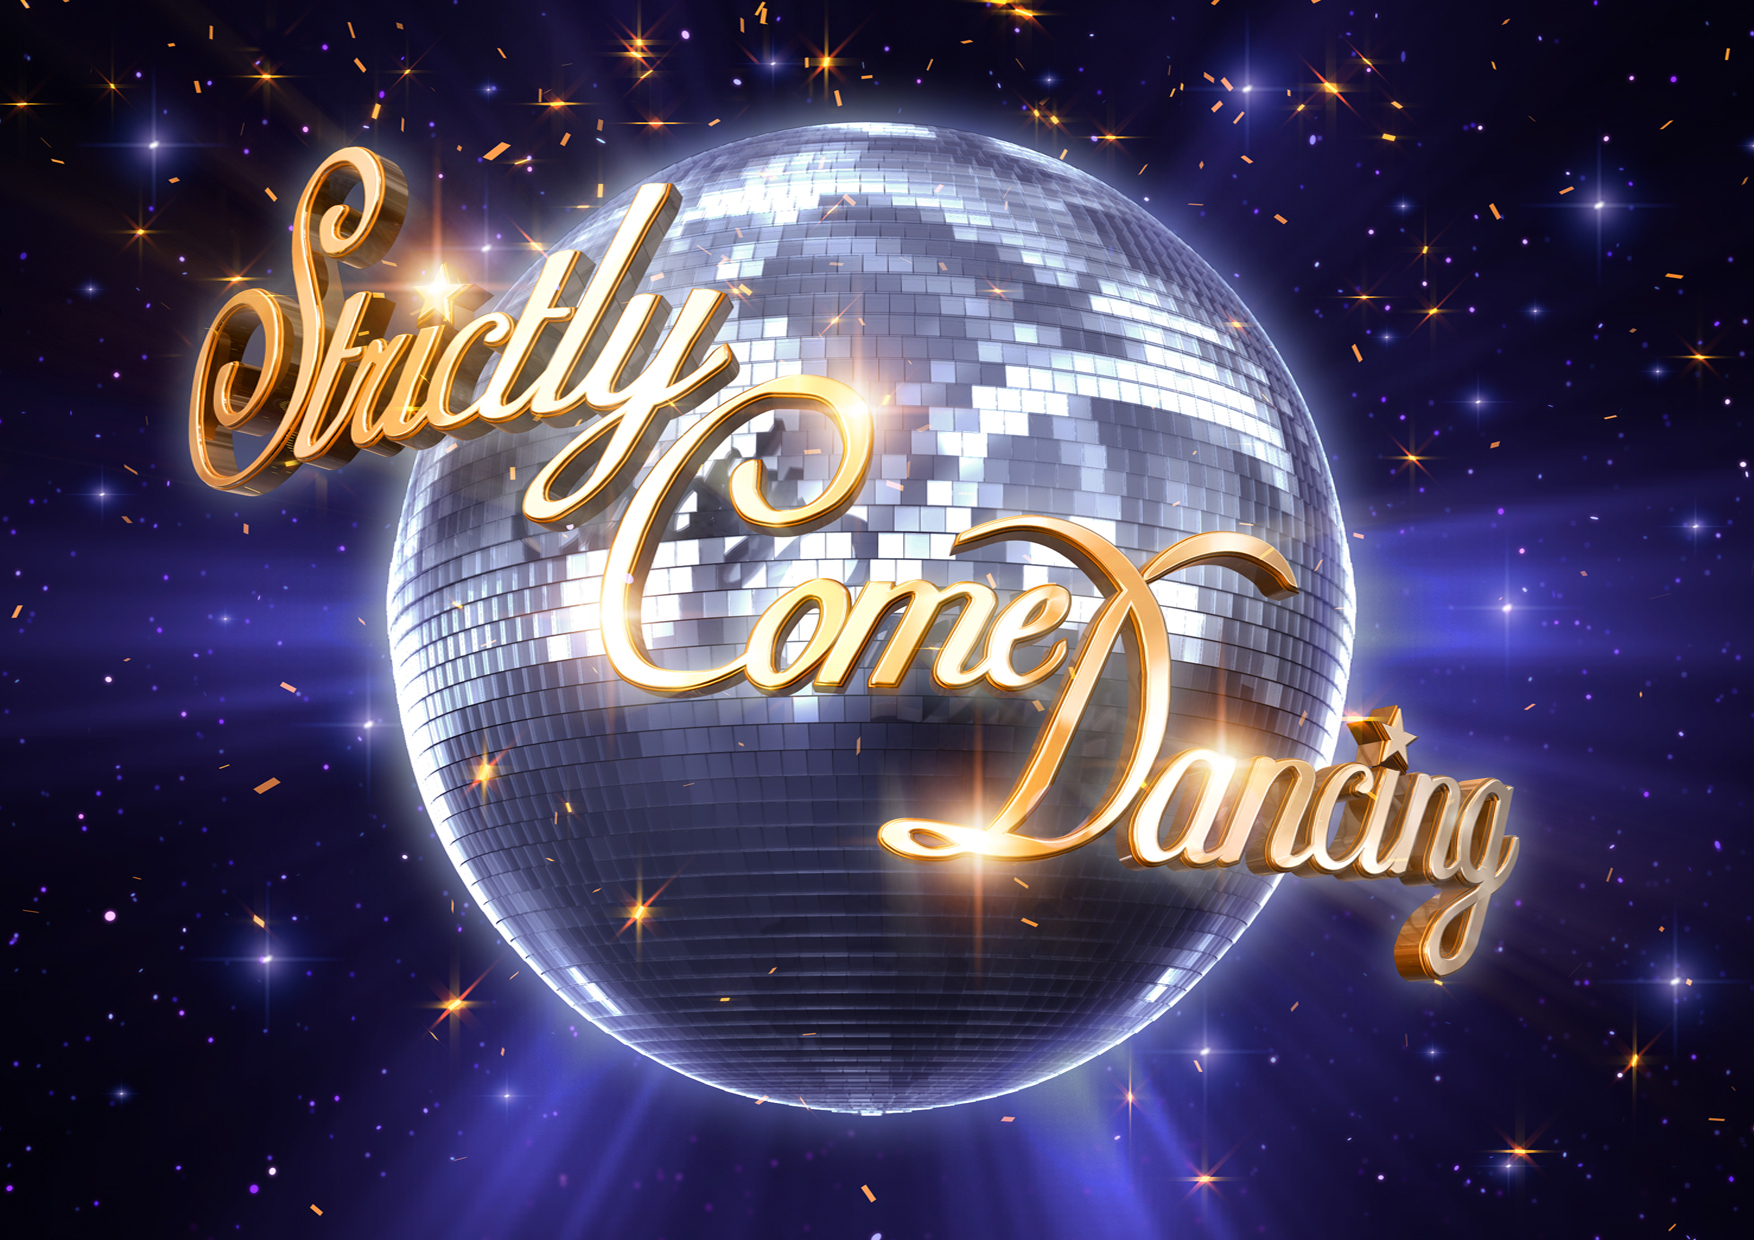 Strictly Come Dancing's New logo 2011